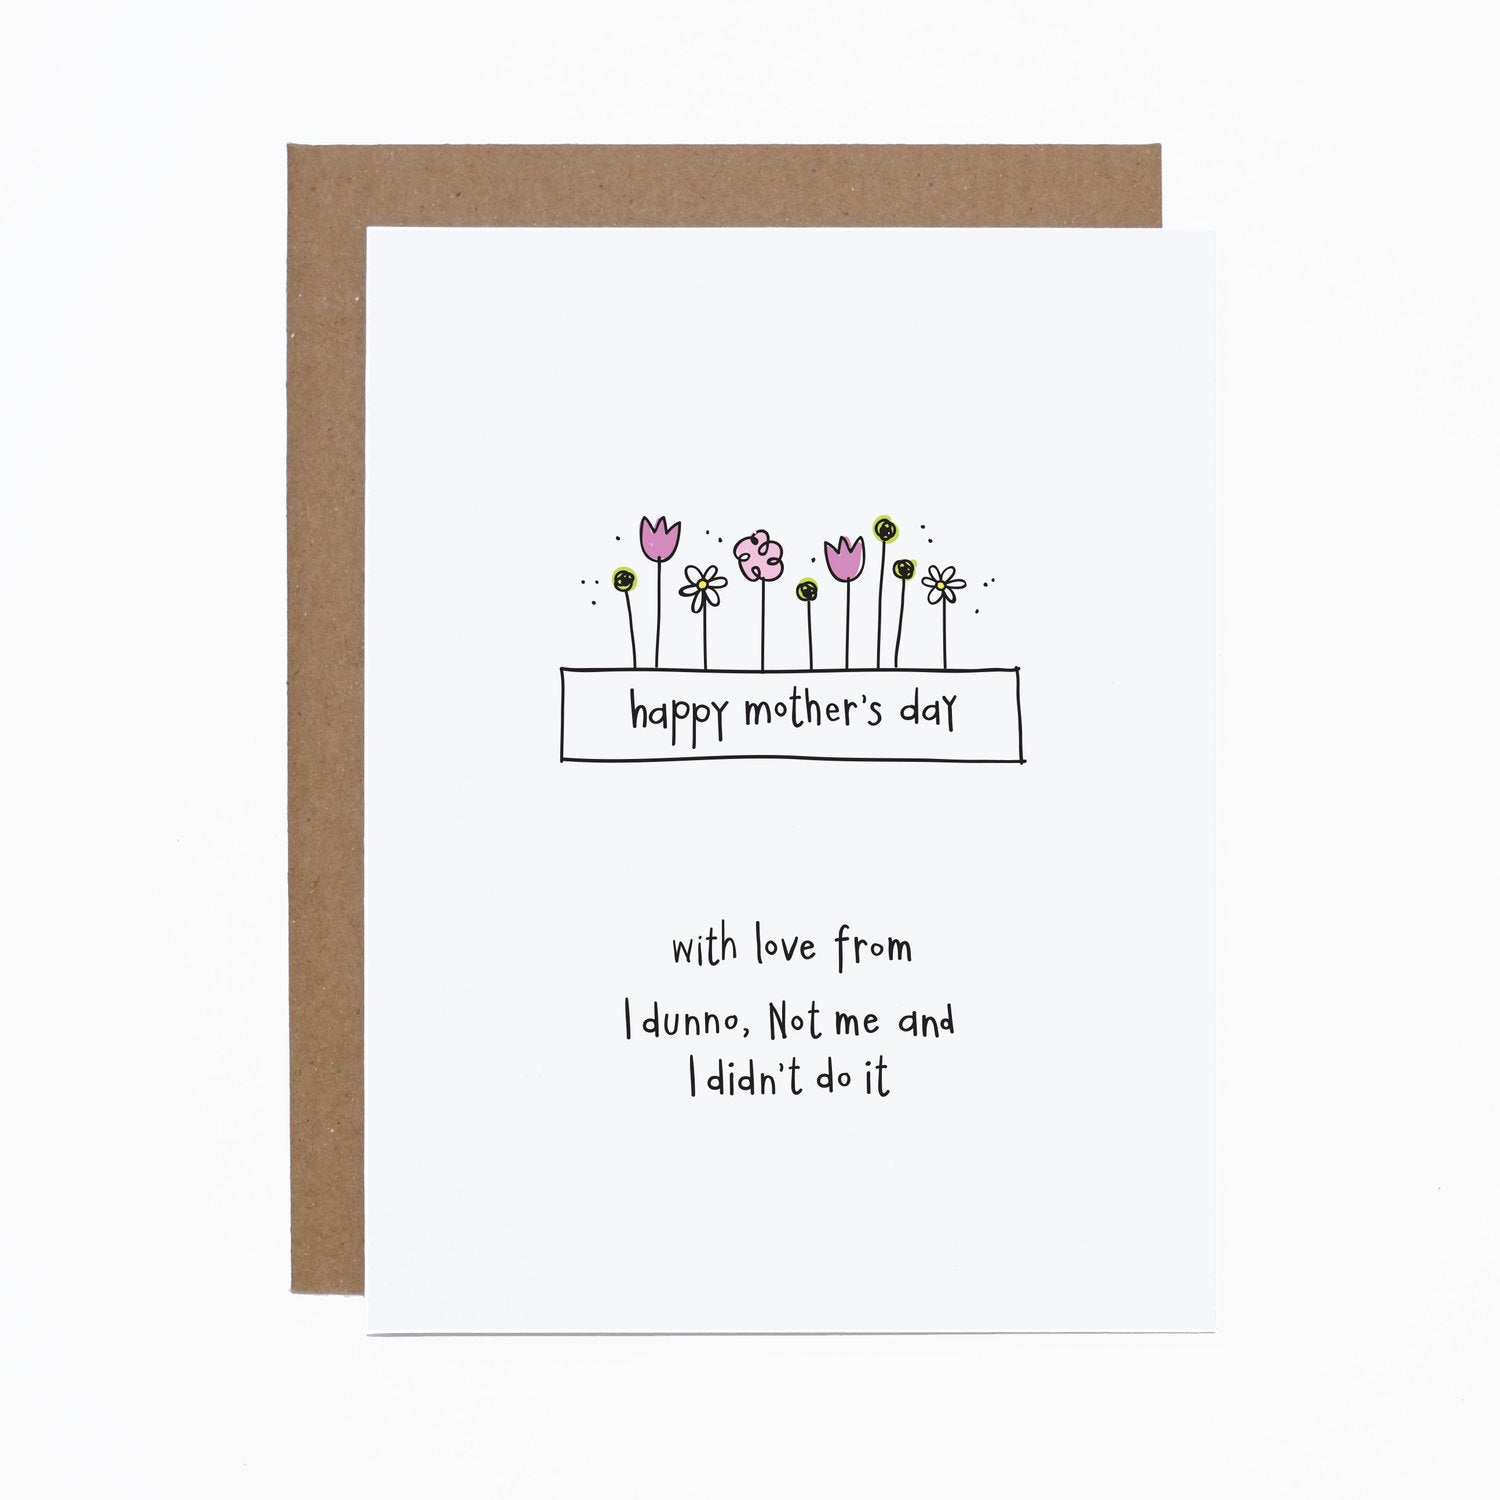 Mother's Day (I didn't do it) card